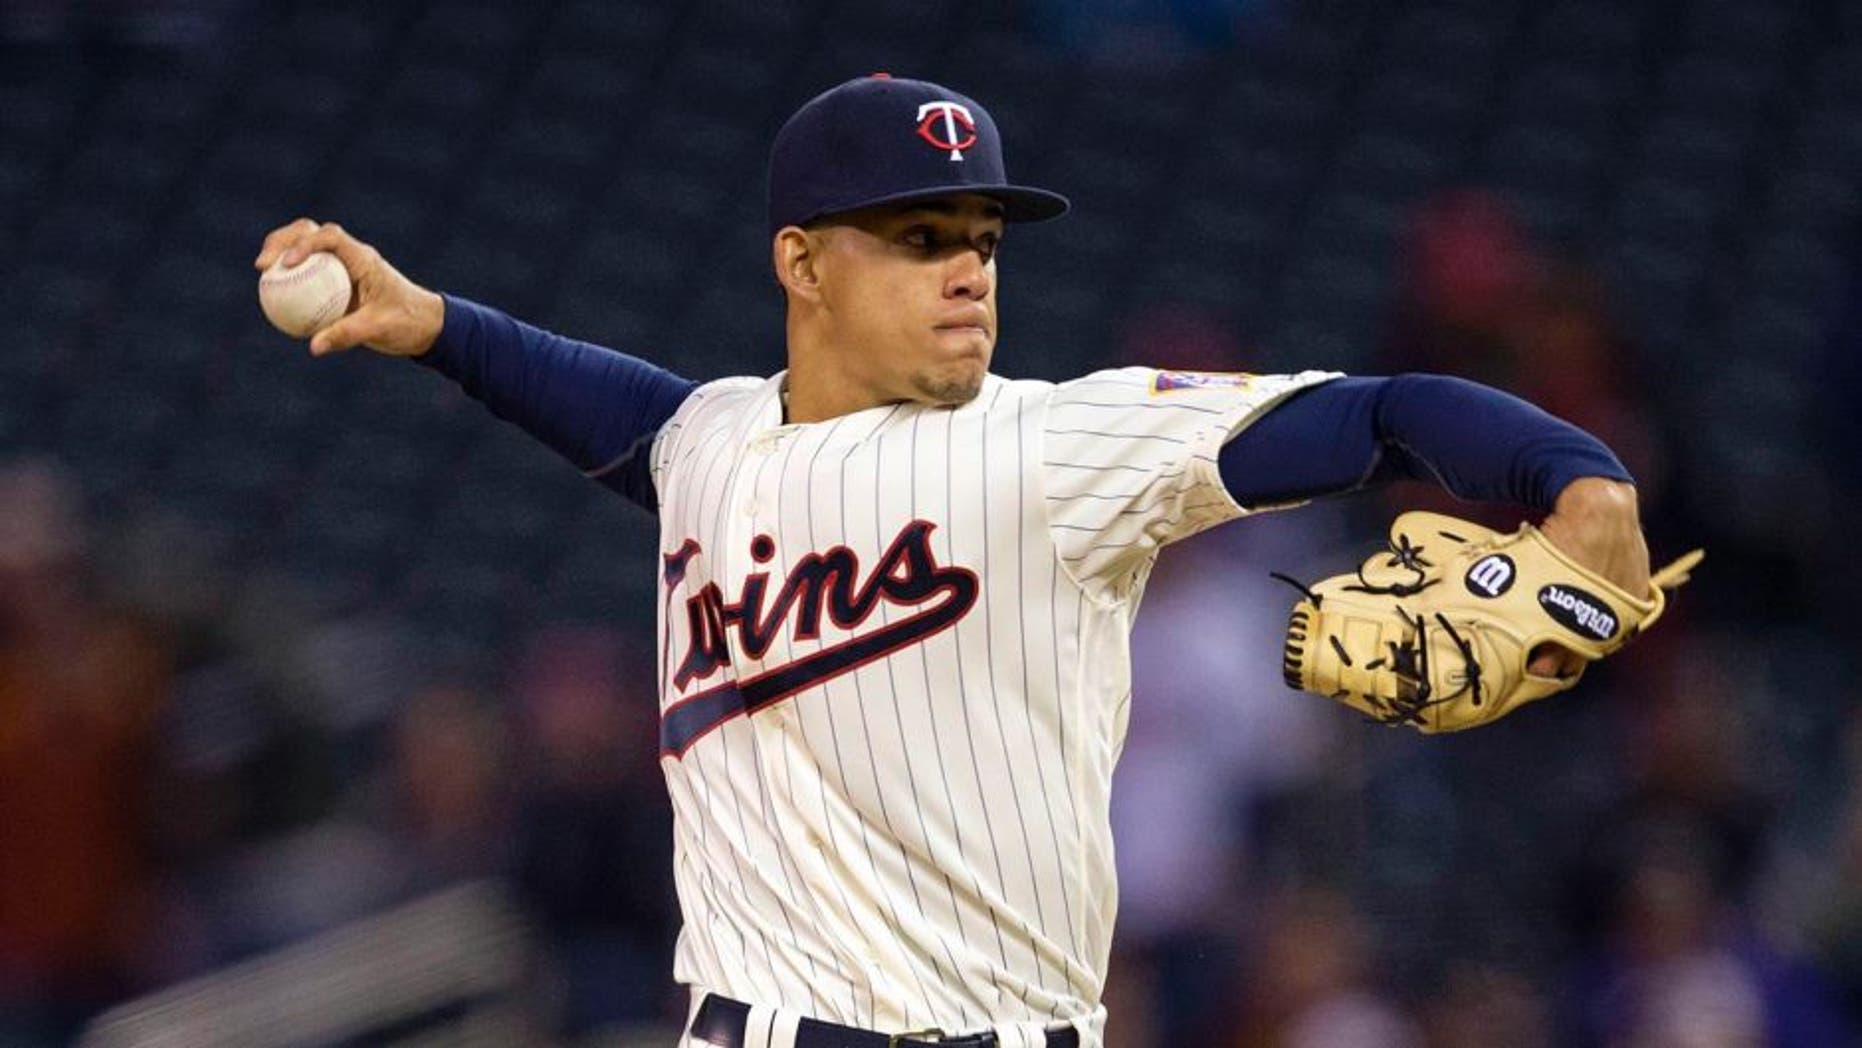 Apr 27, 2016; Minneapolis, MN, USA; Minnesota Twins starting pitcher Jose Berrios (17) delivers a pitch in the first inning against the Cleveland Indians at Target Field. Mandatory Credit: Jesse Johnson-USA TODAY Sports